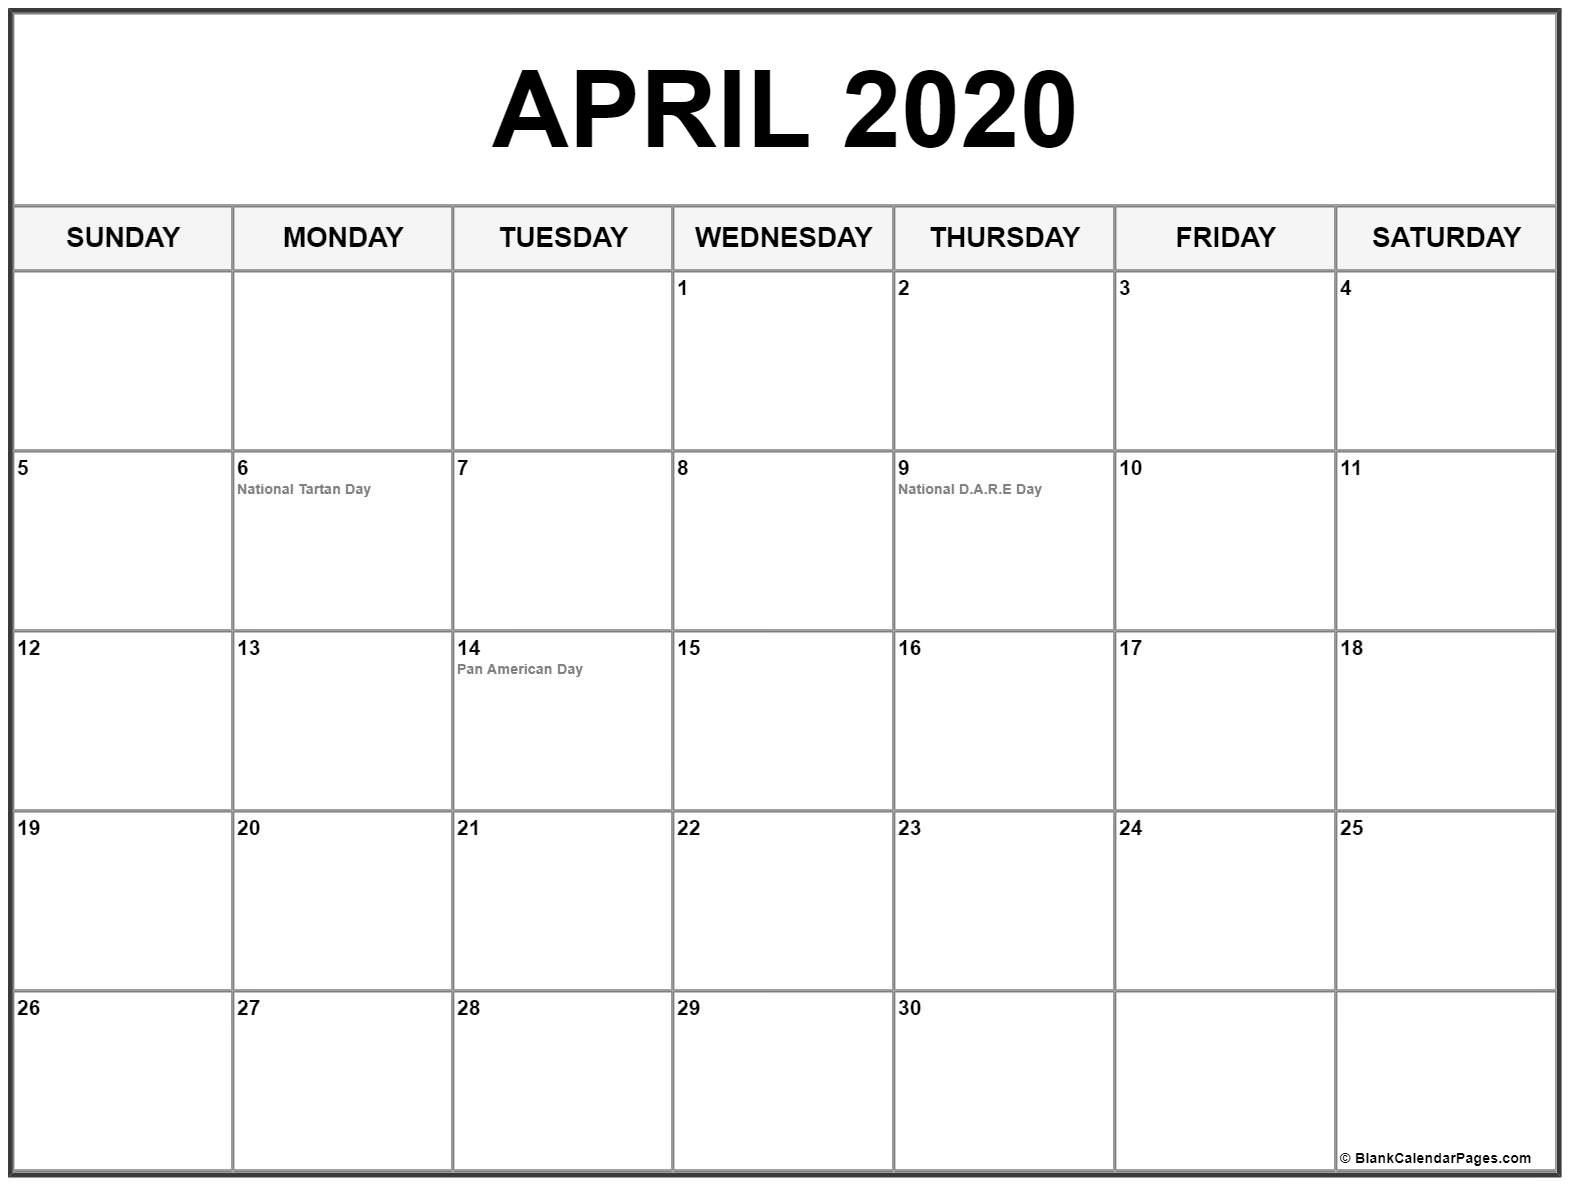 Collection Of April 2020 Calendars With Holidays-2020 Calendar With Religious Holidays